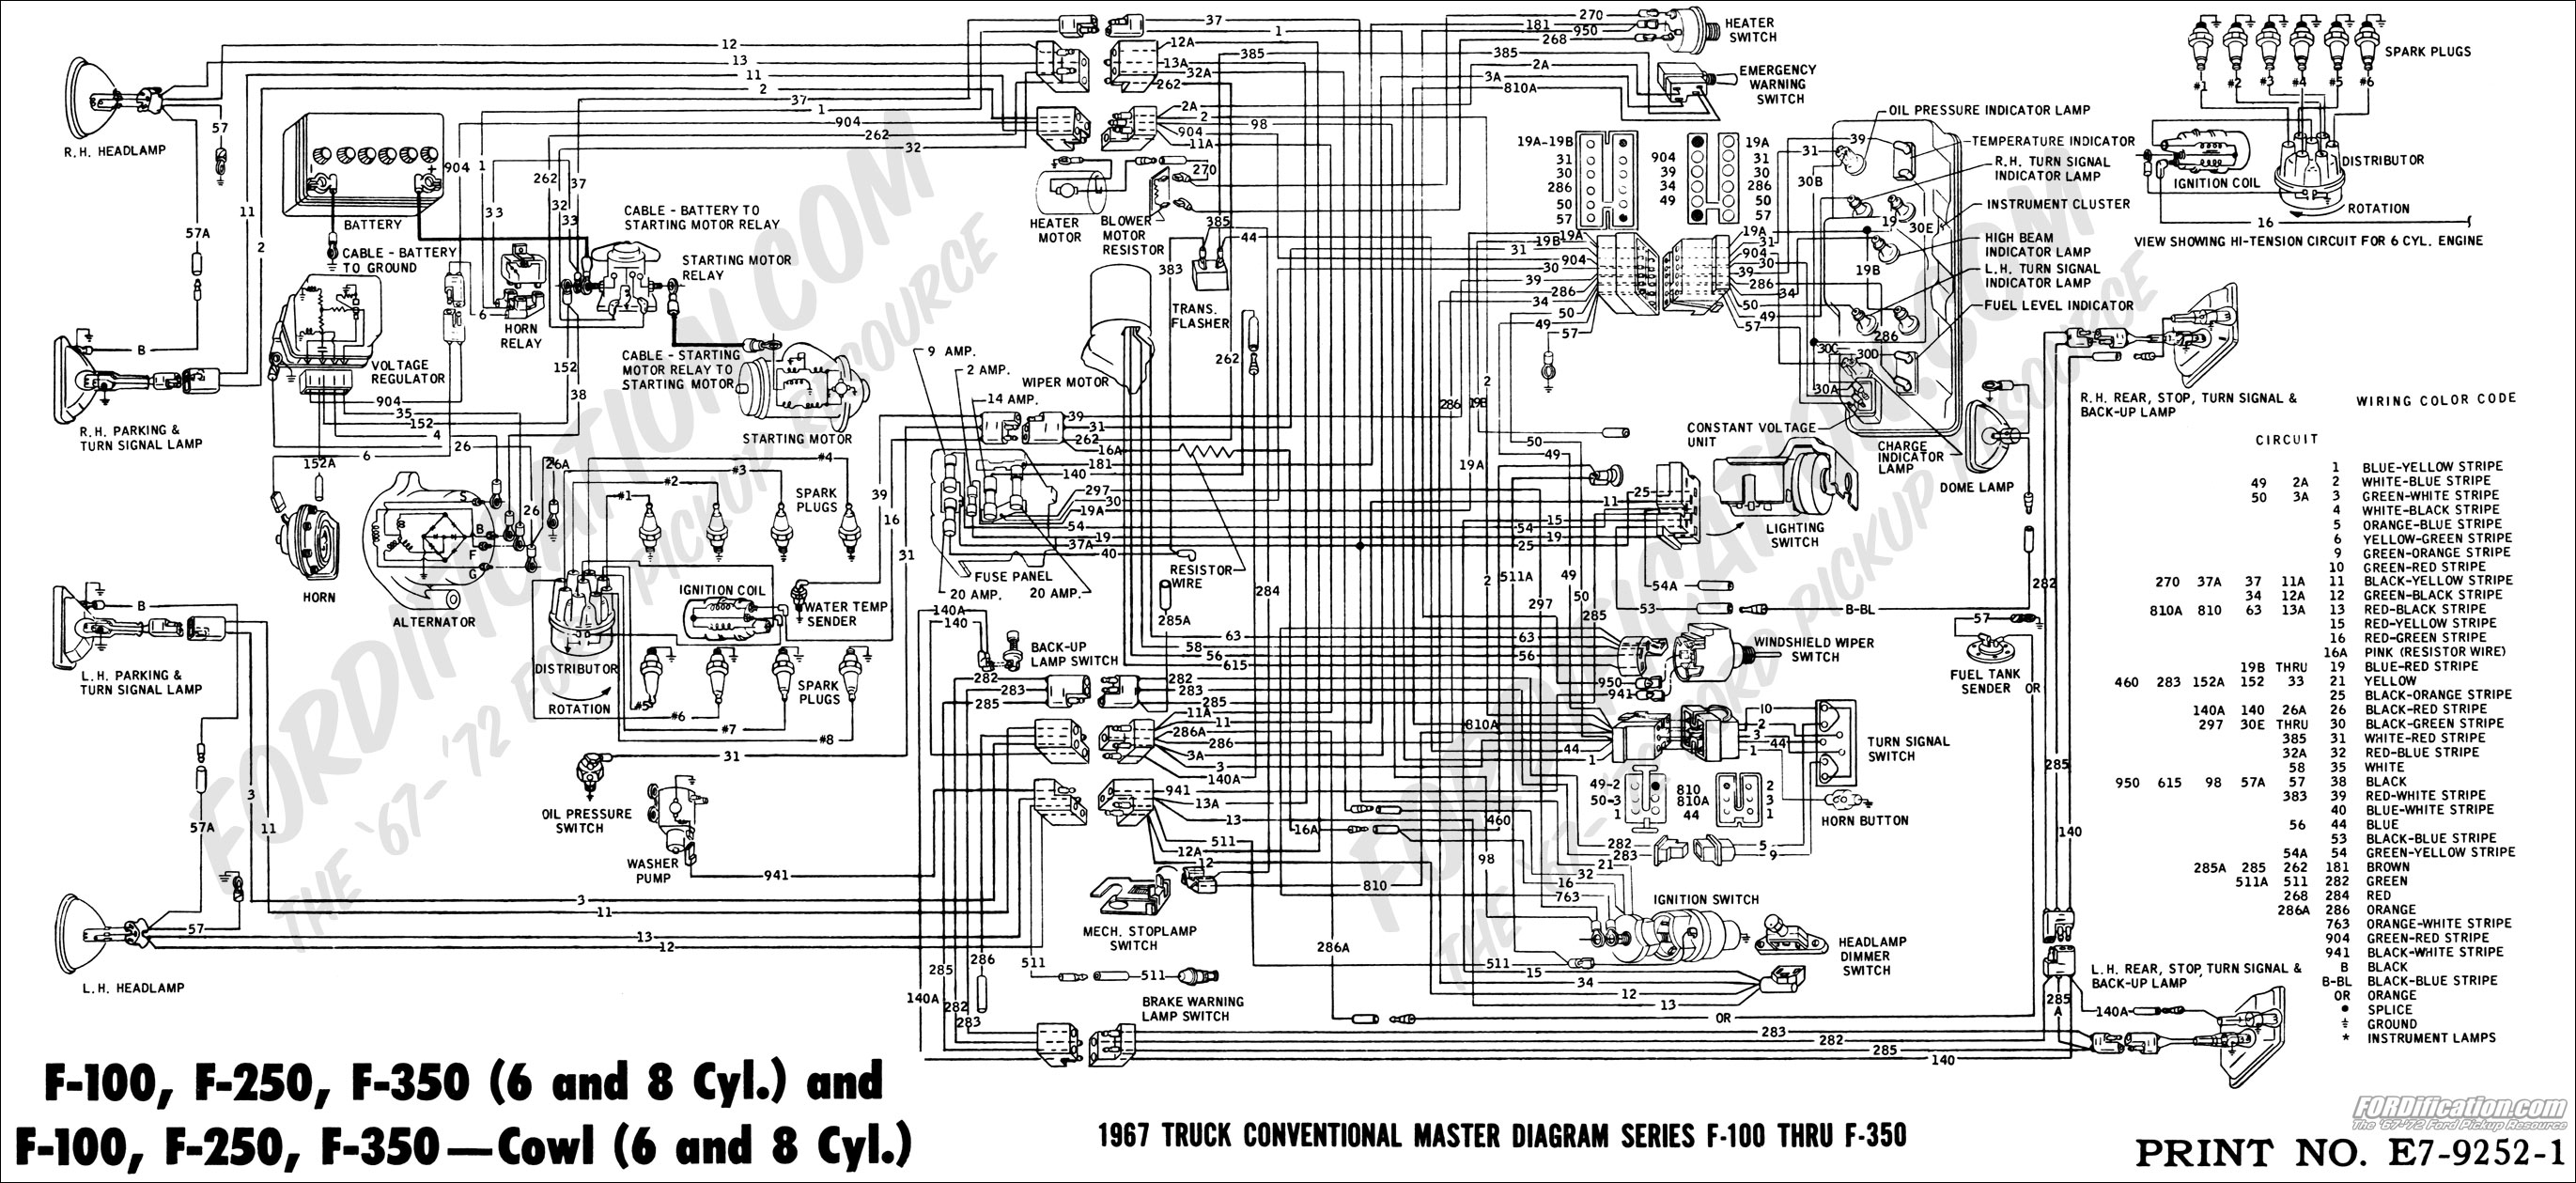 67masterdiagram ford truck technical drawings and schematics section h wiring Wiring Harness Replacement Hazard at edmiracle.co